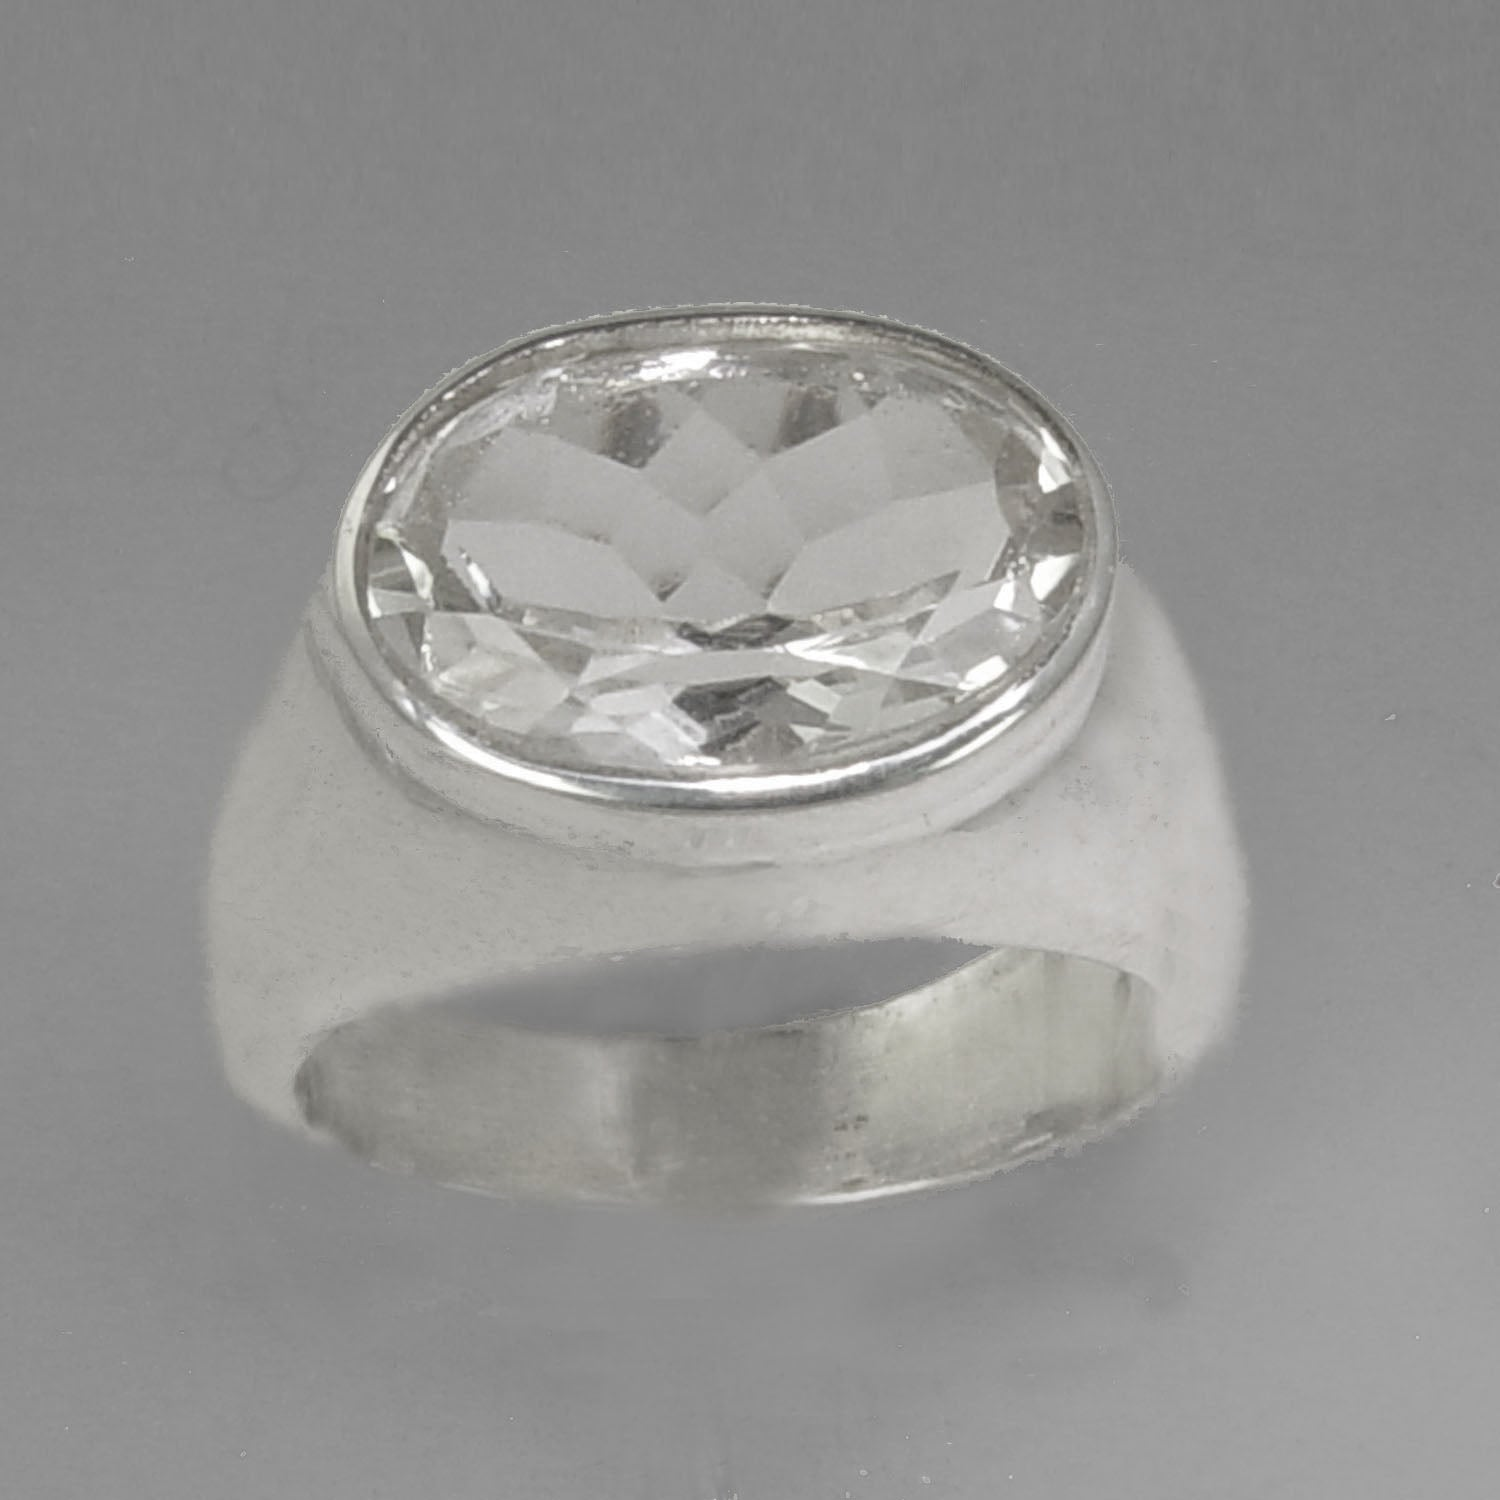 Quartz Crystal 4 .5 ct Oval Bezel Set Sterling Silver Ring, Size 7